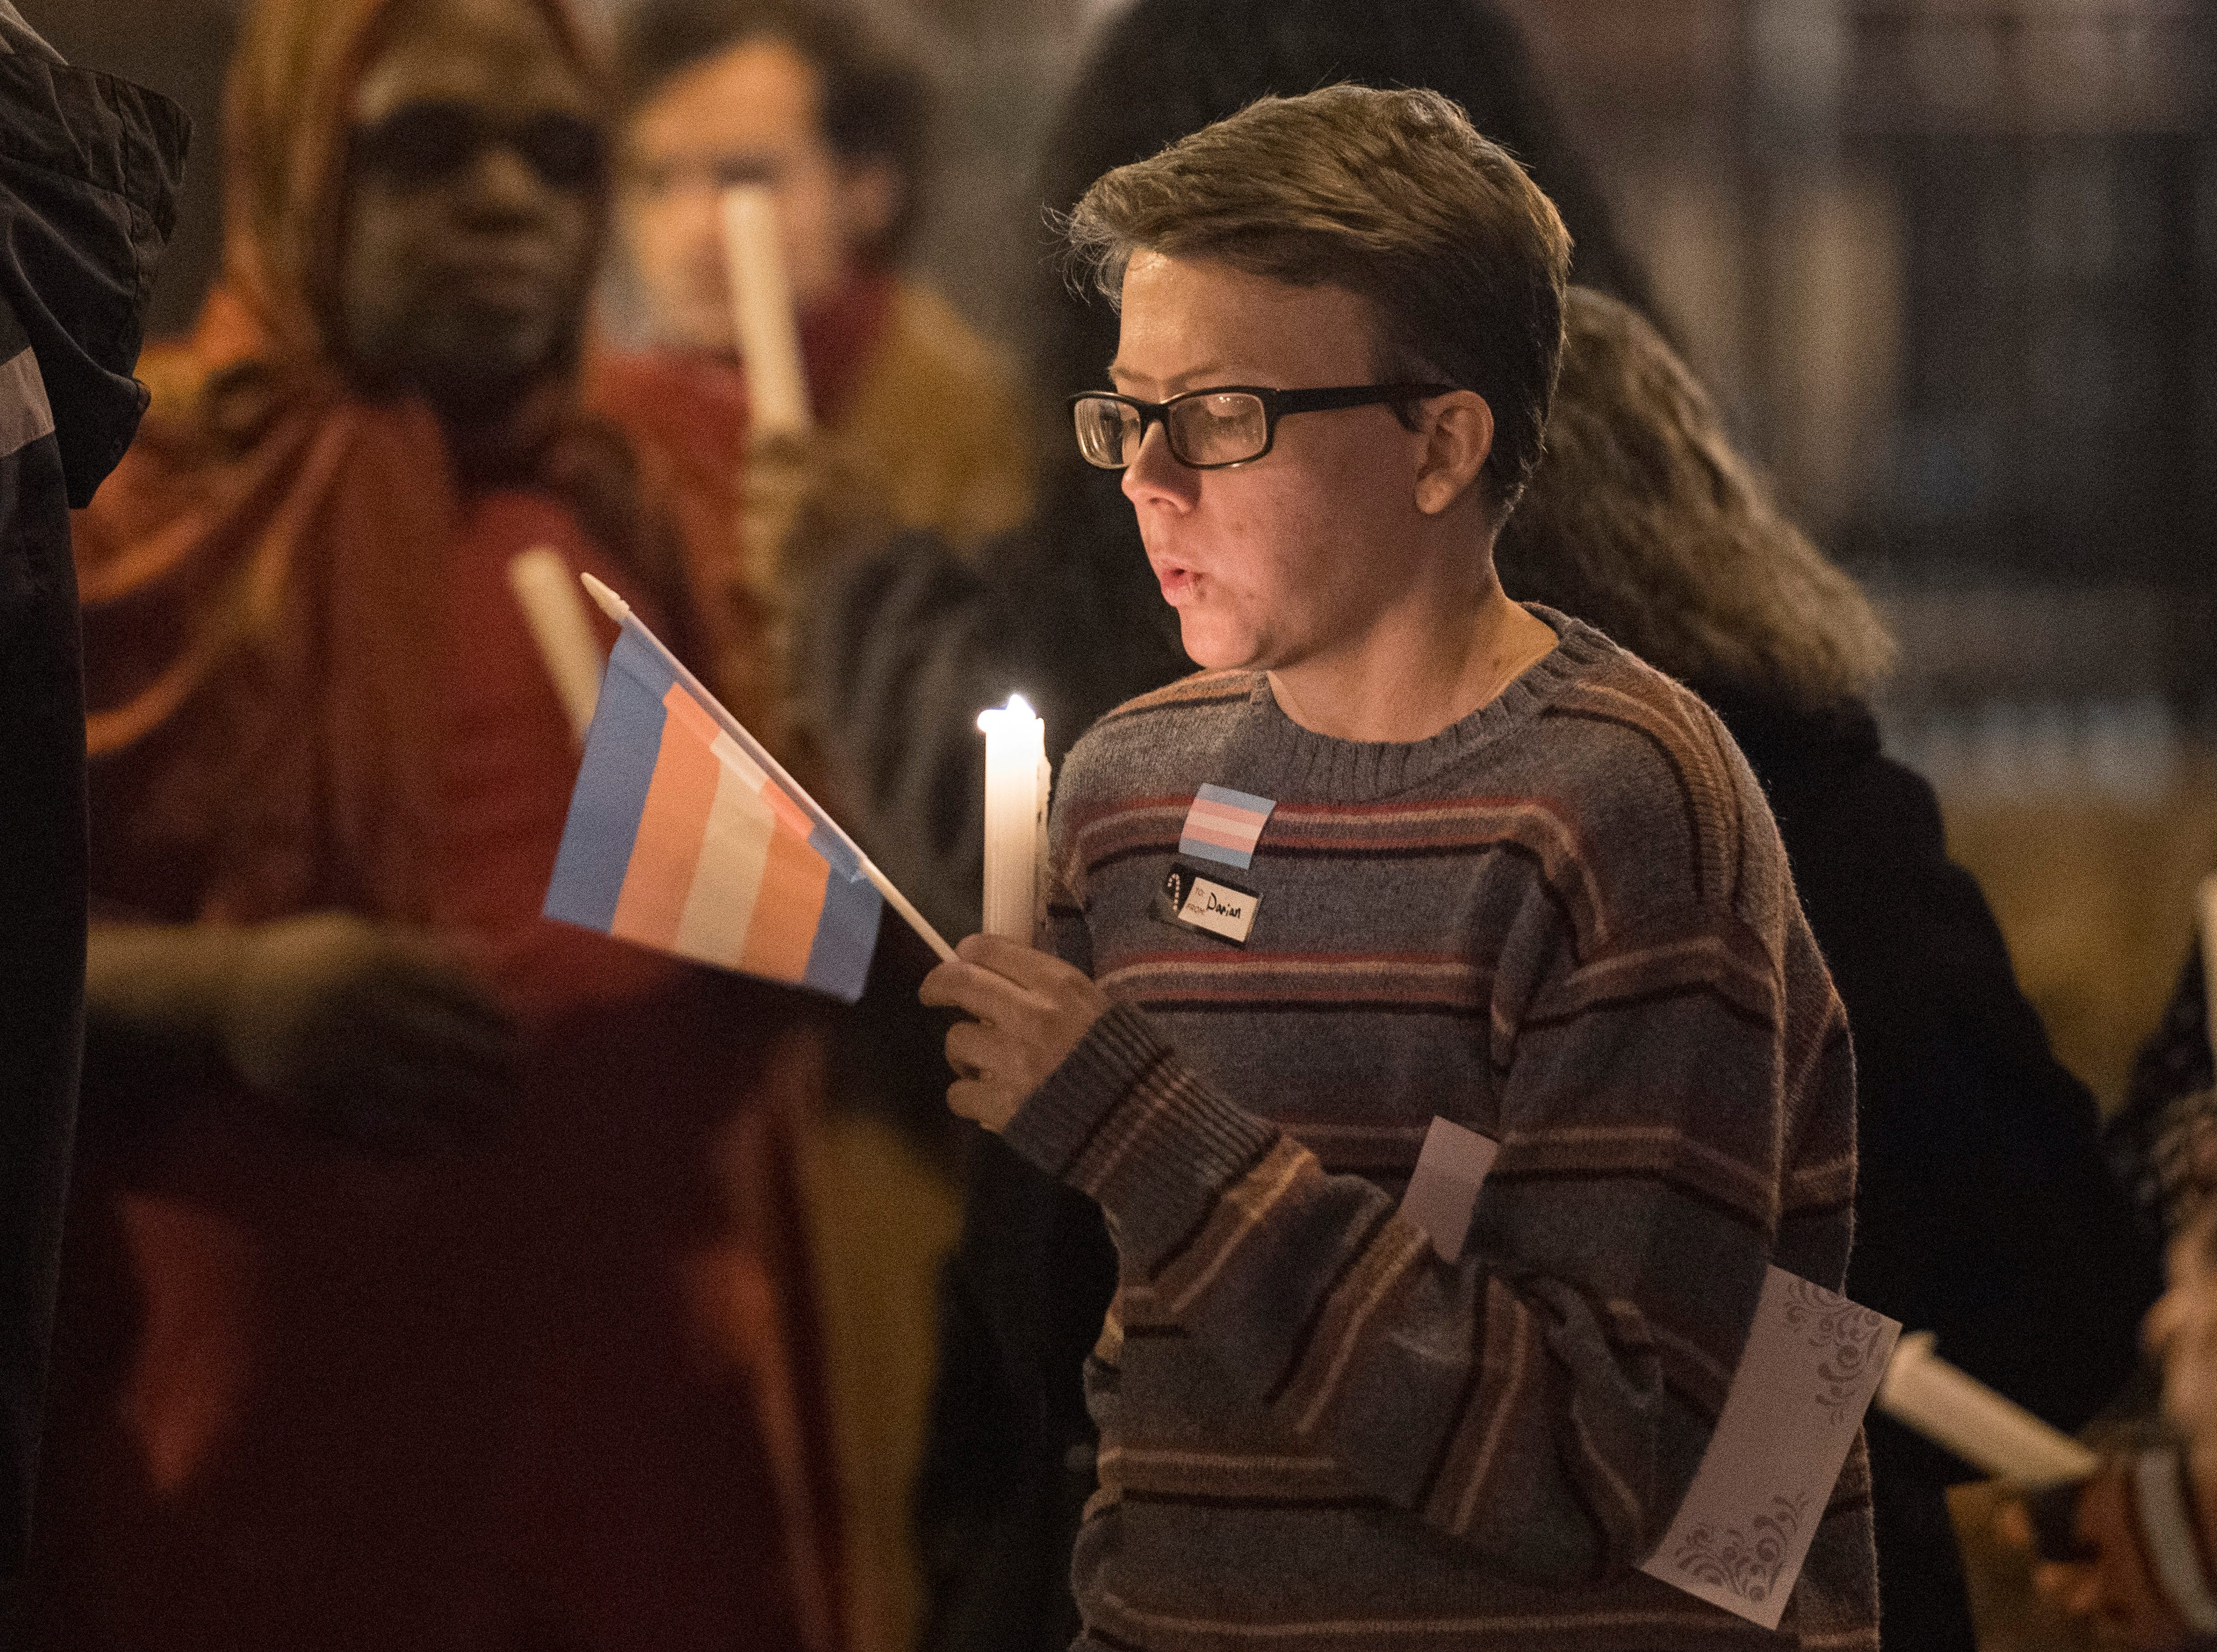 Darian Grigsby blows out a candle after a moment of silence during the candlelight vigil for Transgender day of Remembrance on Haynie's Corner Tuesday, Nov. 20, 2018.